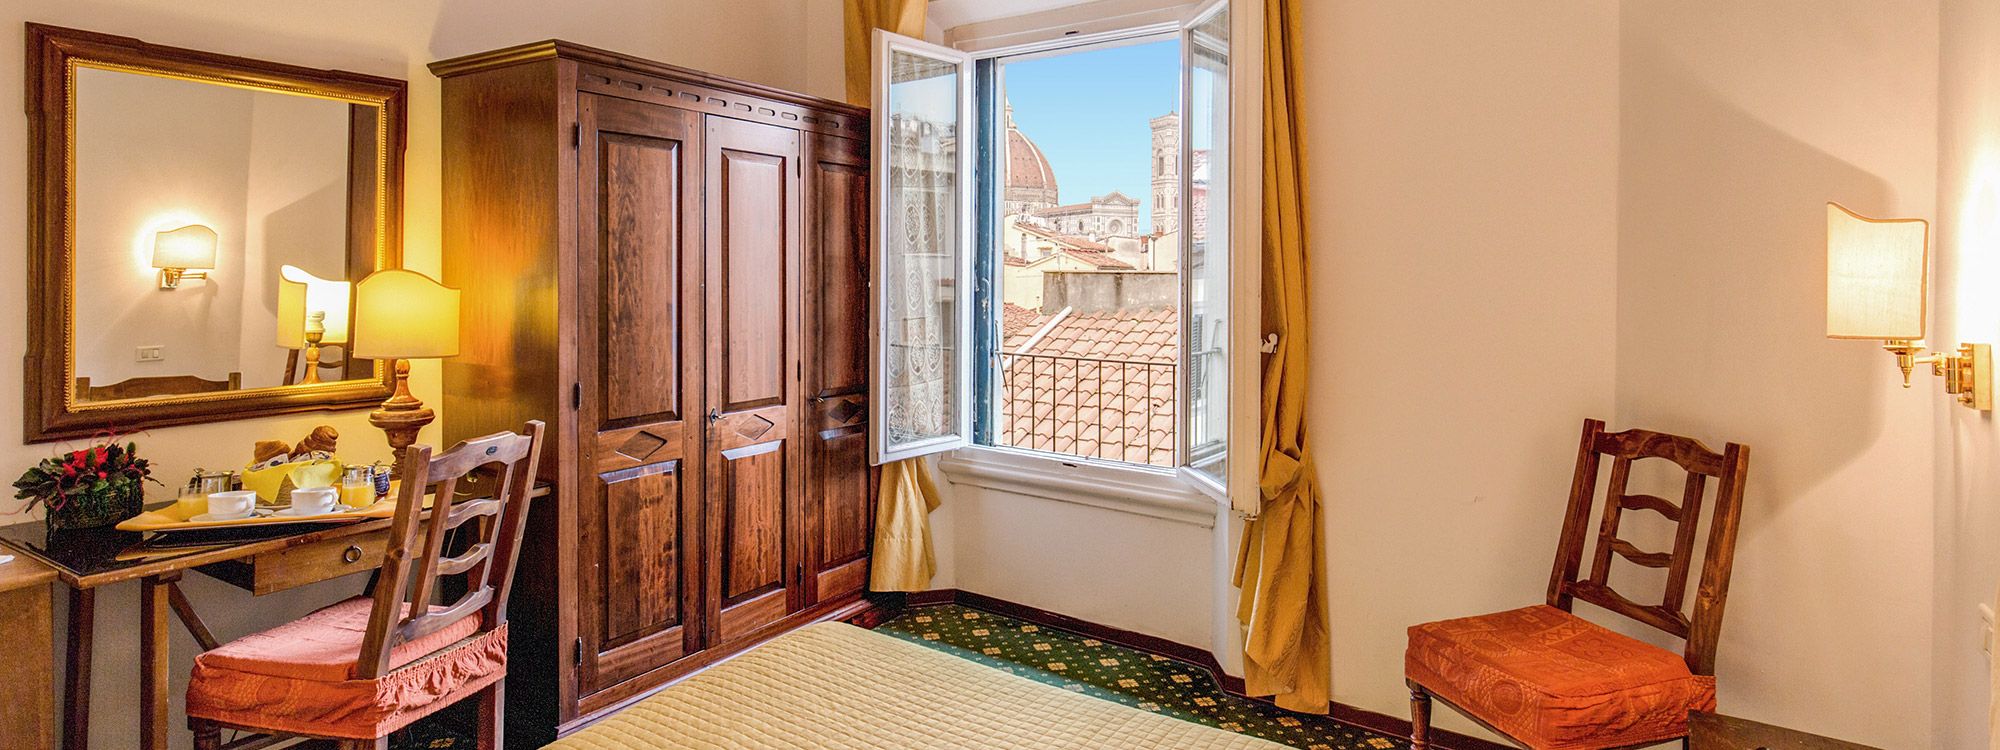 Albergo Firenze Florence Italy Hotel San Giorgio And Olimpic Florence Italy Official Site